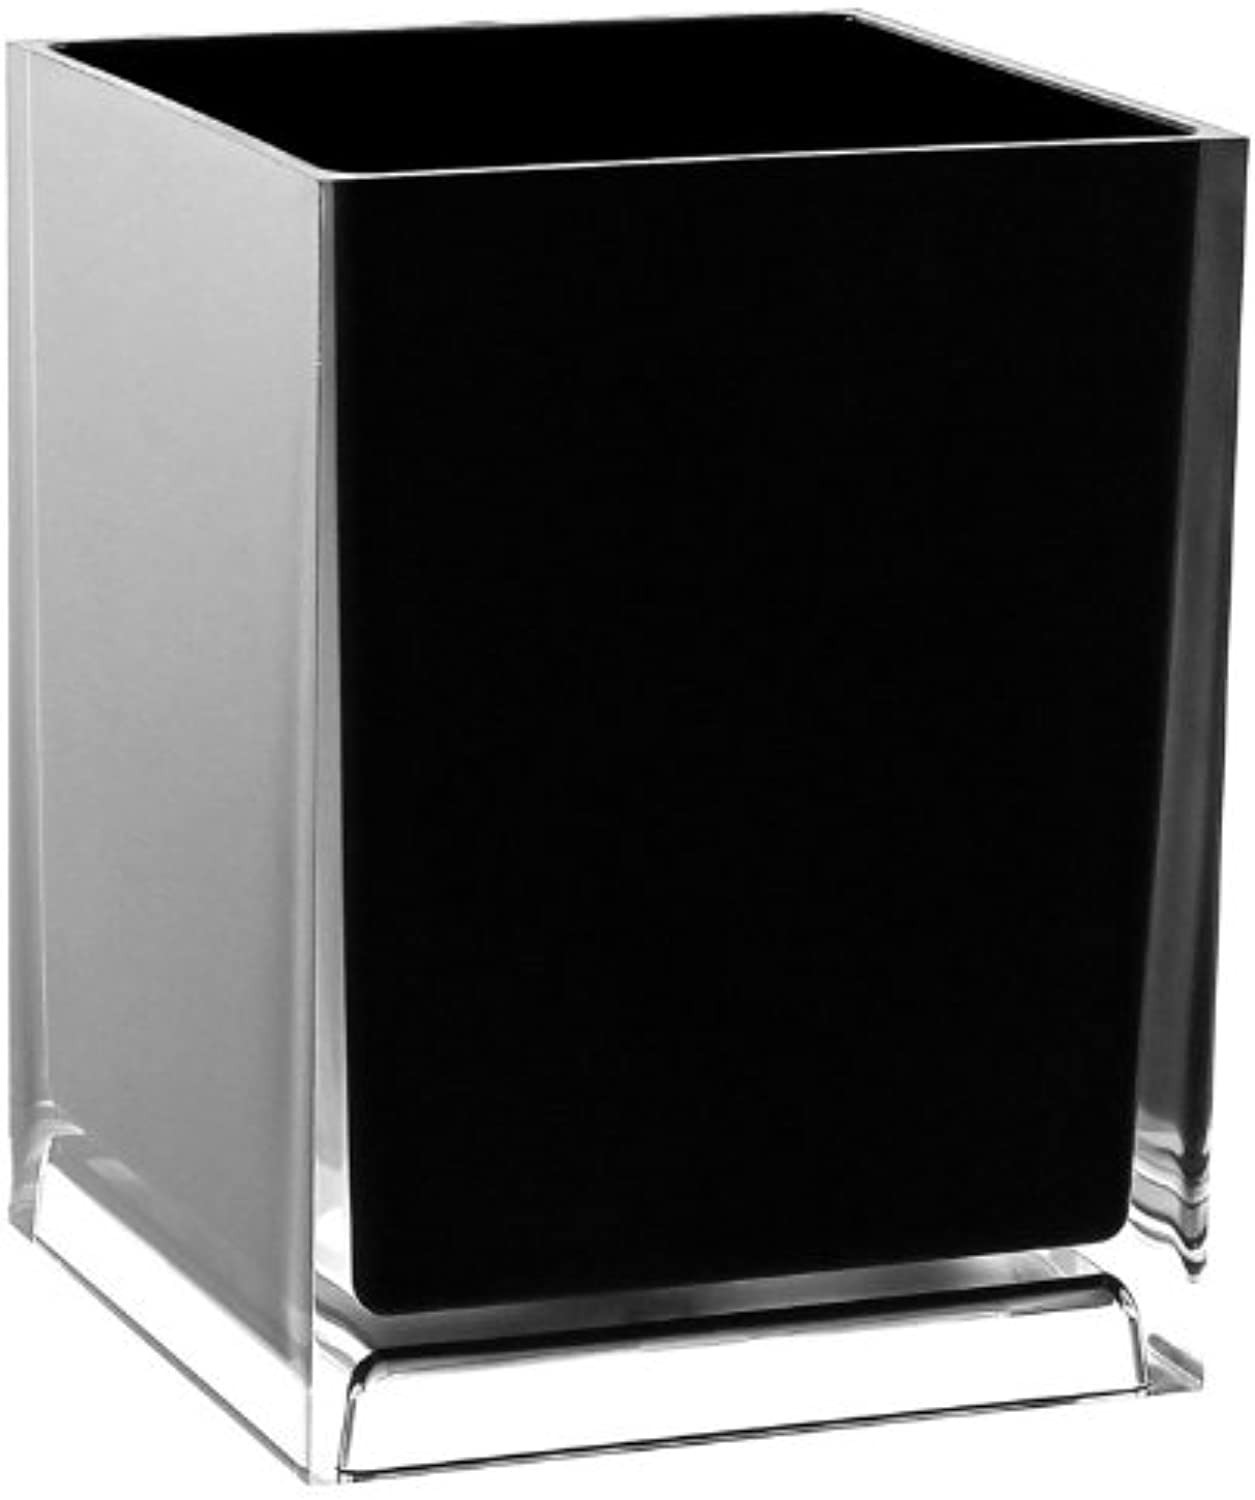 Gedy Gedy RA09-14 Rainbow Dustbin Box, 2.5  L x 7.09  W, Black